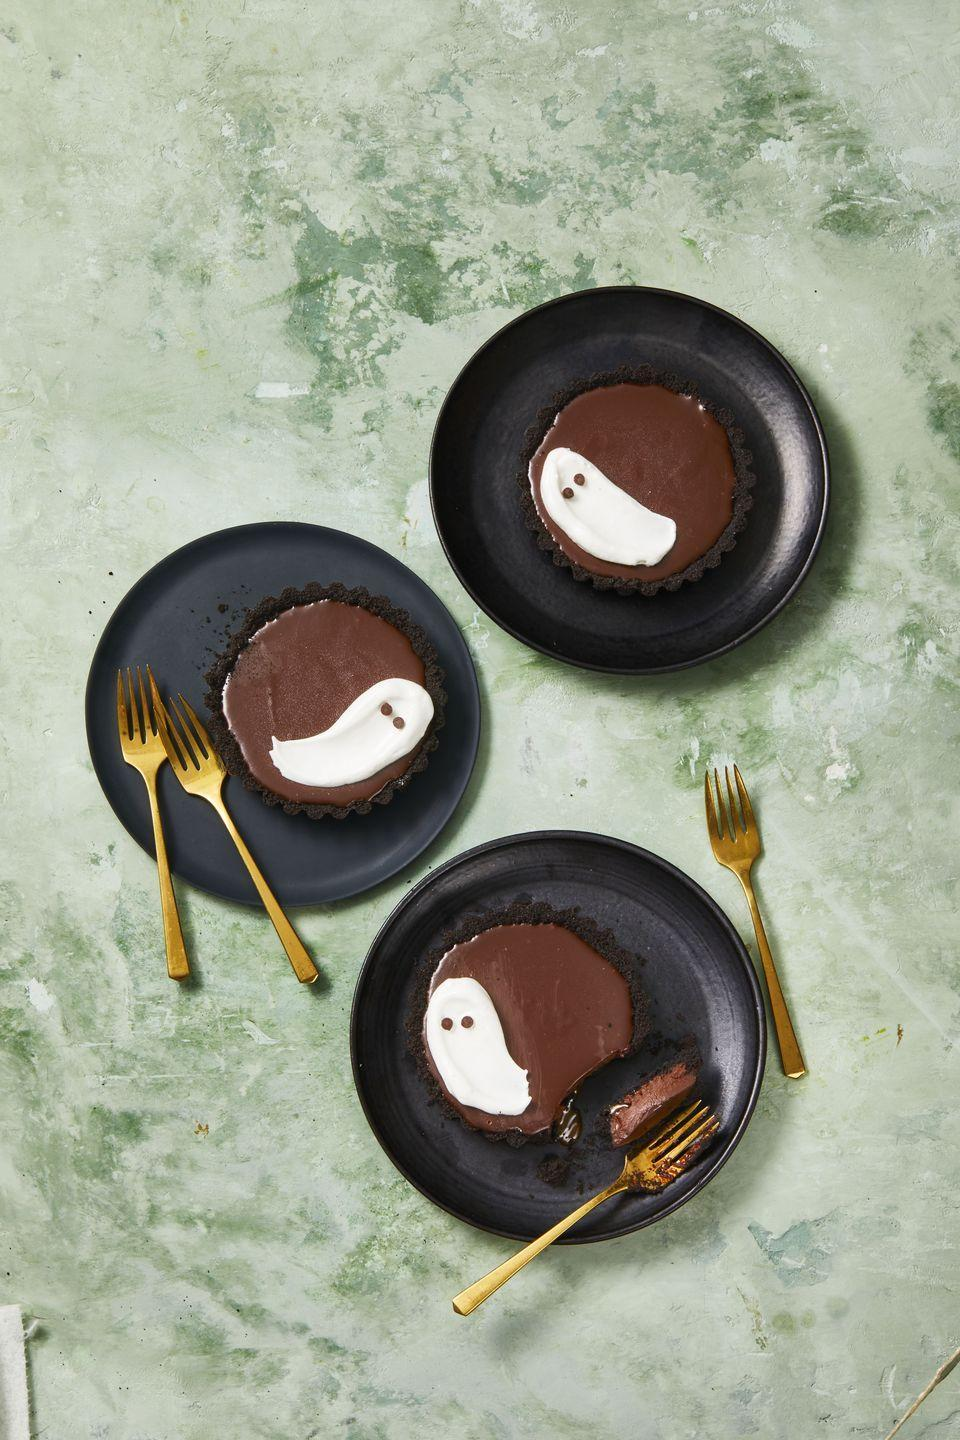 """<p>Decadent chocolate and caramel make this treat devilishly delicious while the meringue ghosts are frighteningly festive!</p><p><em><a href=""""https://www.goodhousekeeping.com/food-recipes/a34330877/meringue-ghost-tarts-recipe/"""" rel=""""nofollow noopener"""" target=""""_blank"""" data-ylk=""""slk:Get the recipe for Meringue Ghost Tarts »"""" class=""""link rapid-noclick-resp"""">Get the recipe for Meringue Ghost Tarts »</a></em></p>"""